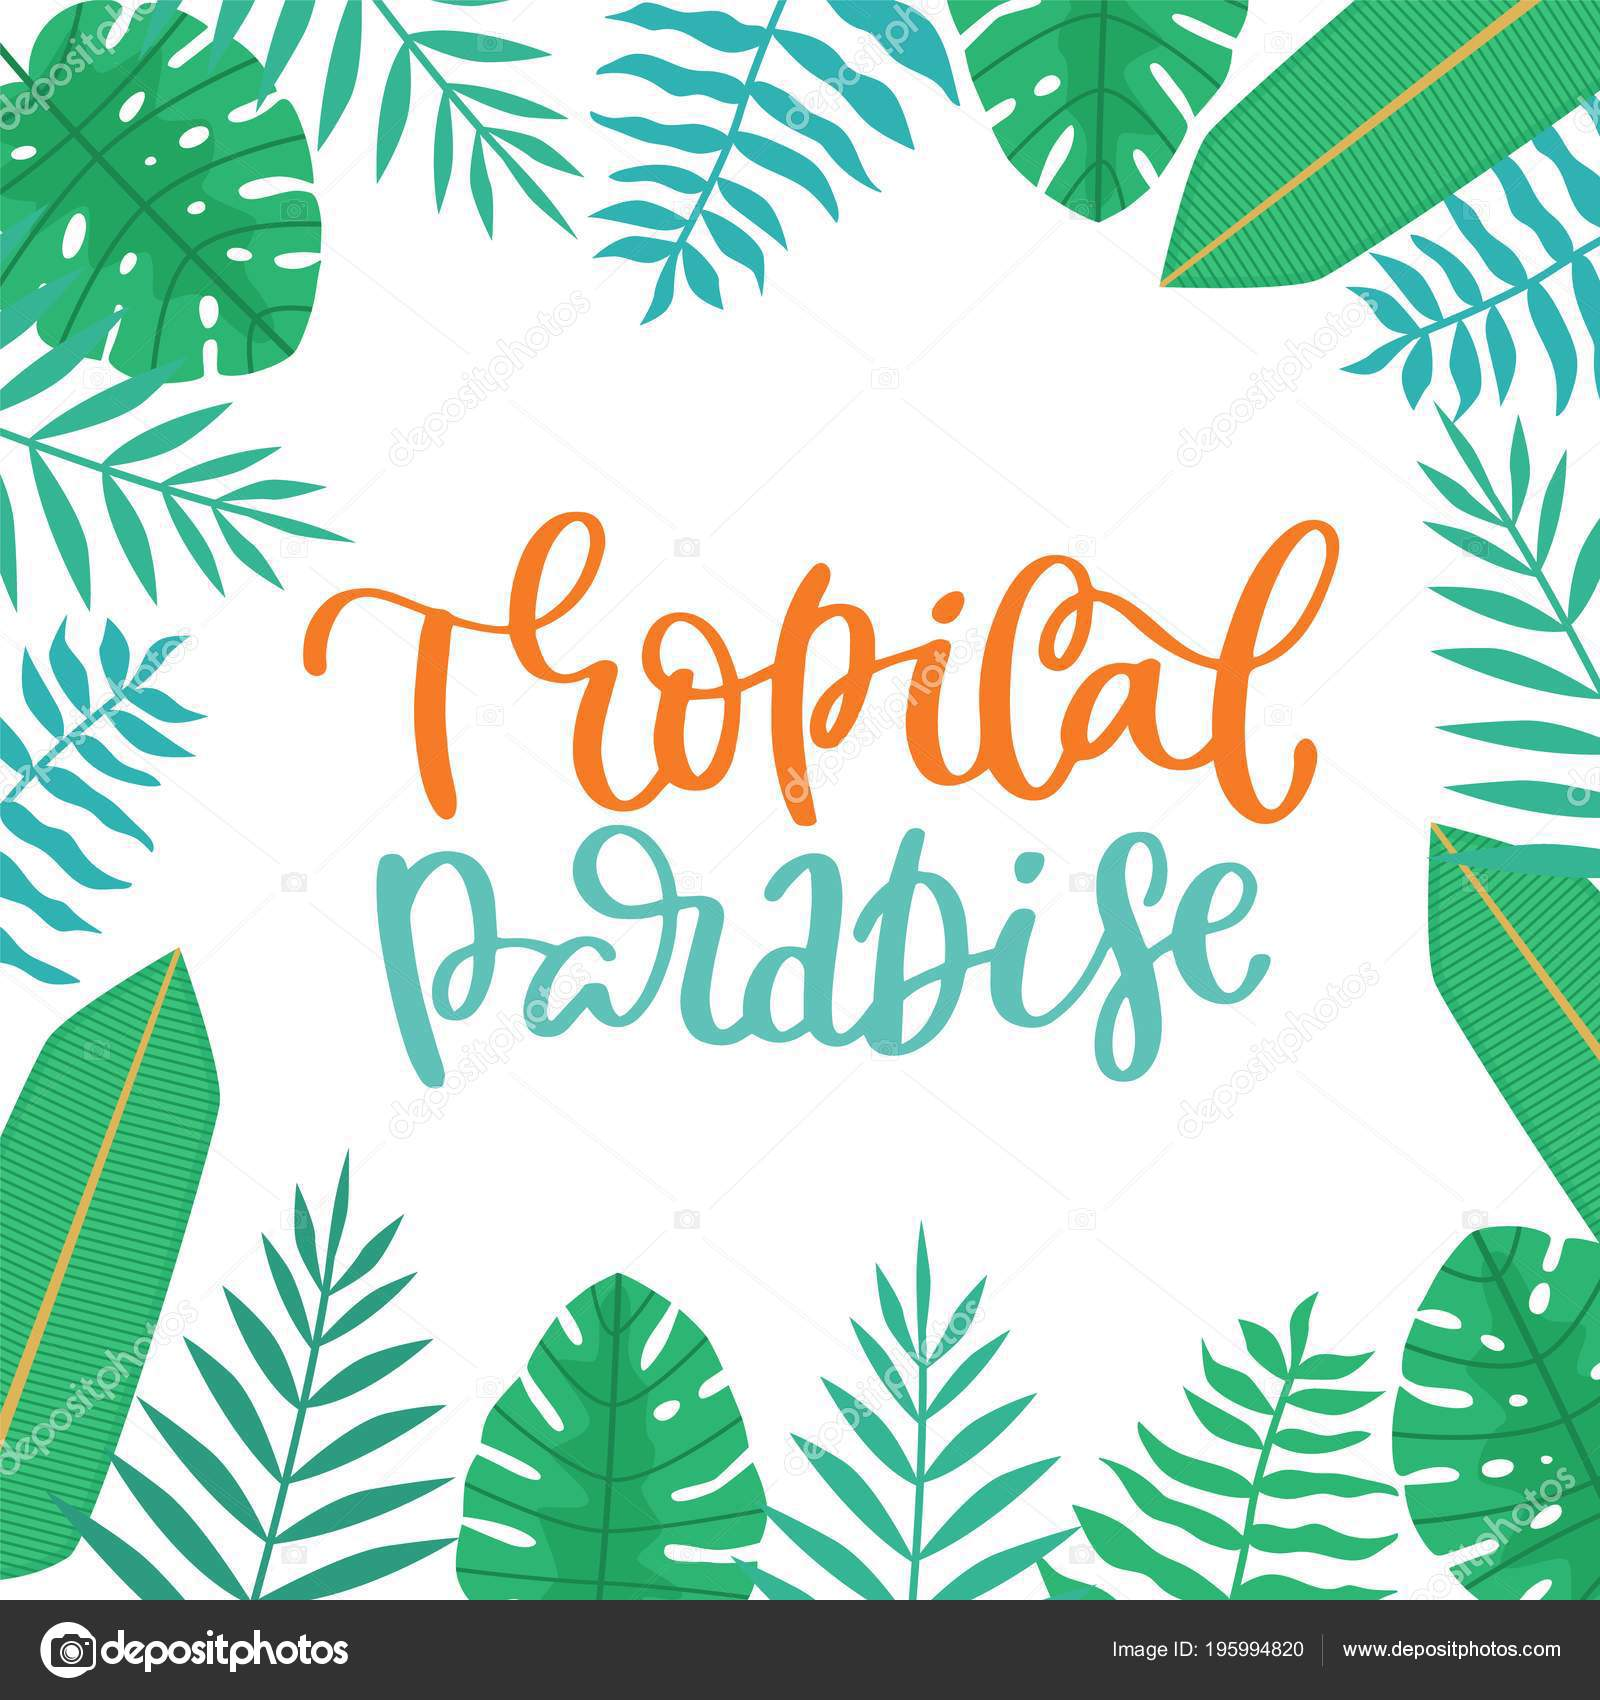 Tropical Quote Tropical Paradise Summer Inspiration Quotes Lettering Phrases Tropical Leaves Calligraphy Stock Vector C Maryart 195994820 Tropical forest collection.perfect for wedding,frame. https depositphotos com 195994820 stock illustration tropical paradise summer inspiration quotes html